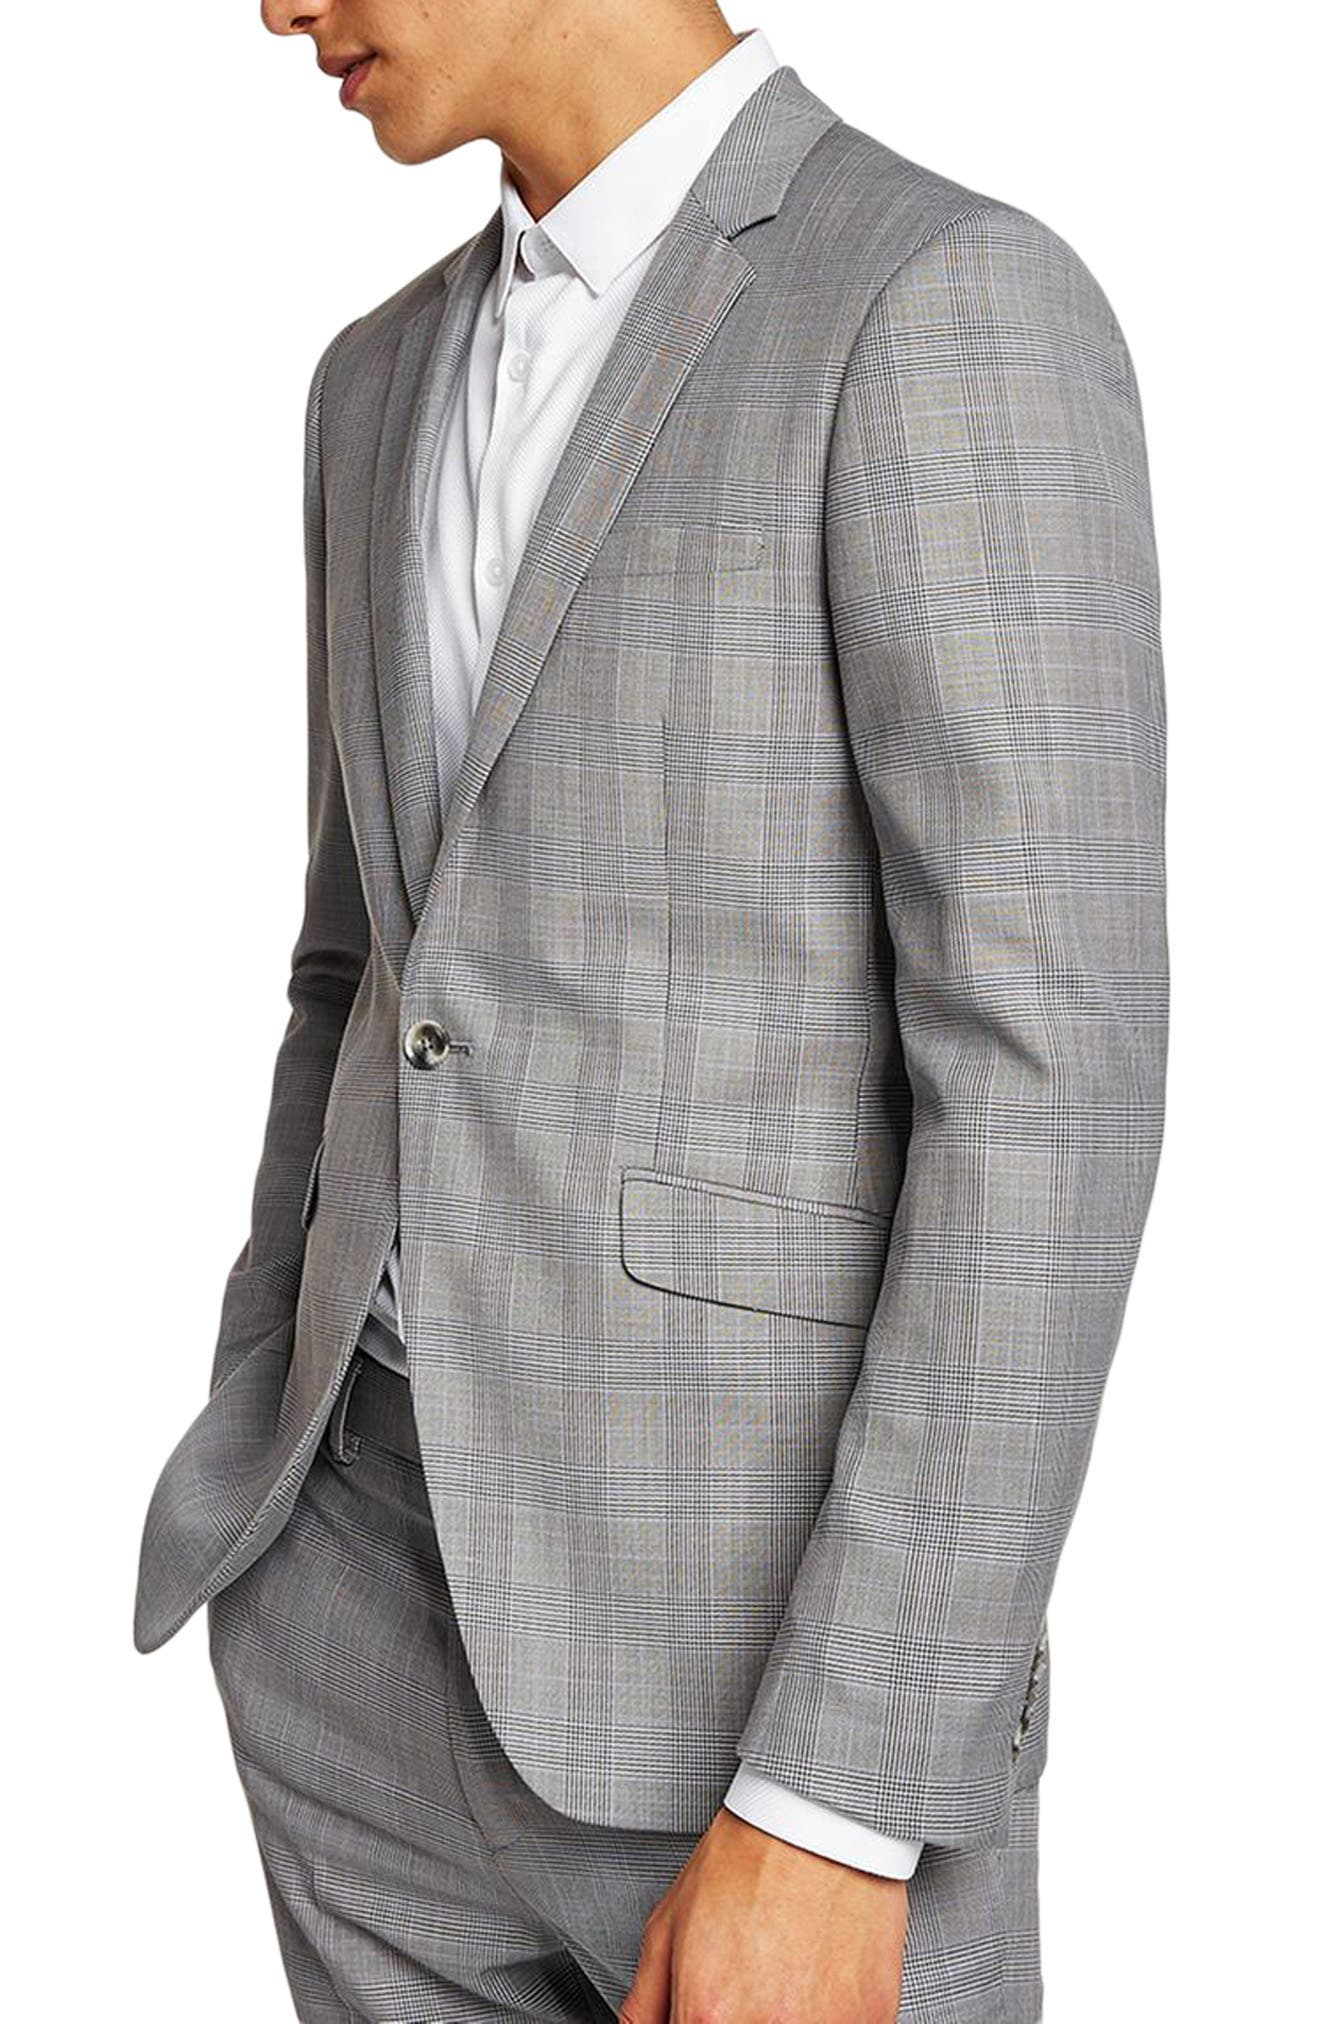 Skinny Fit Check Suit Jacket,                             Main thumbnail 1, color,                             Grey Multi